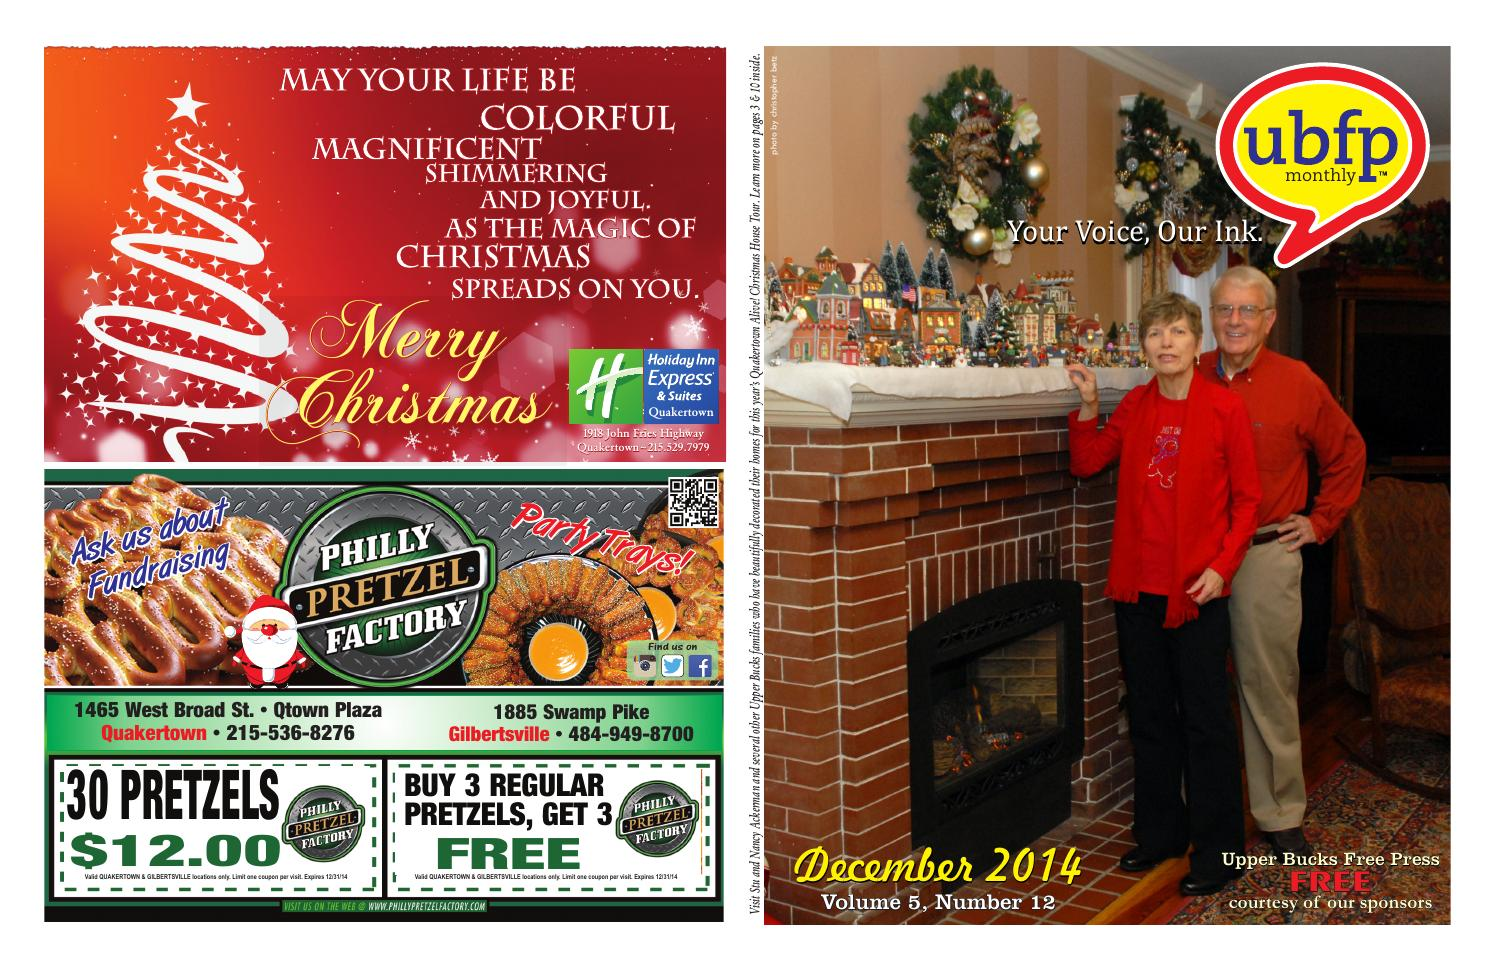 Quakertown furniture removal junk pickup in addition the coolest - Upper Bucks Free Press December 2014 By Upper Bucks Free Press Issuu